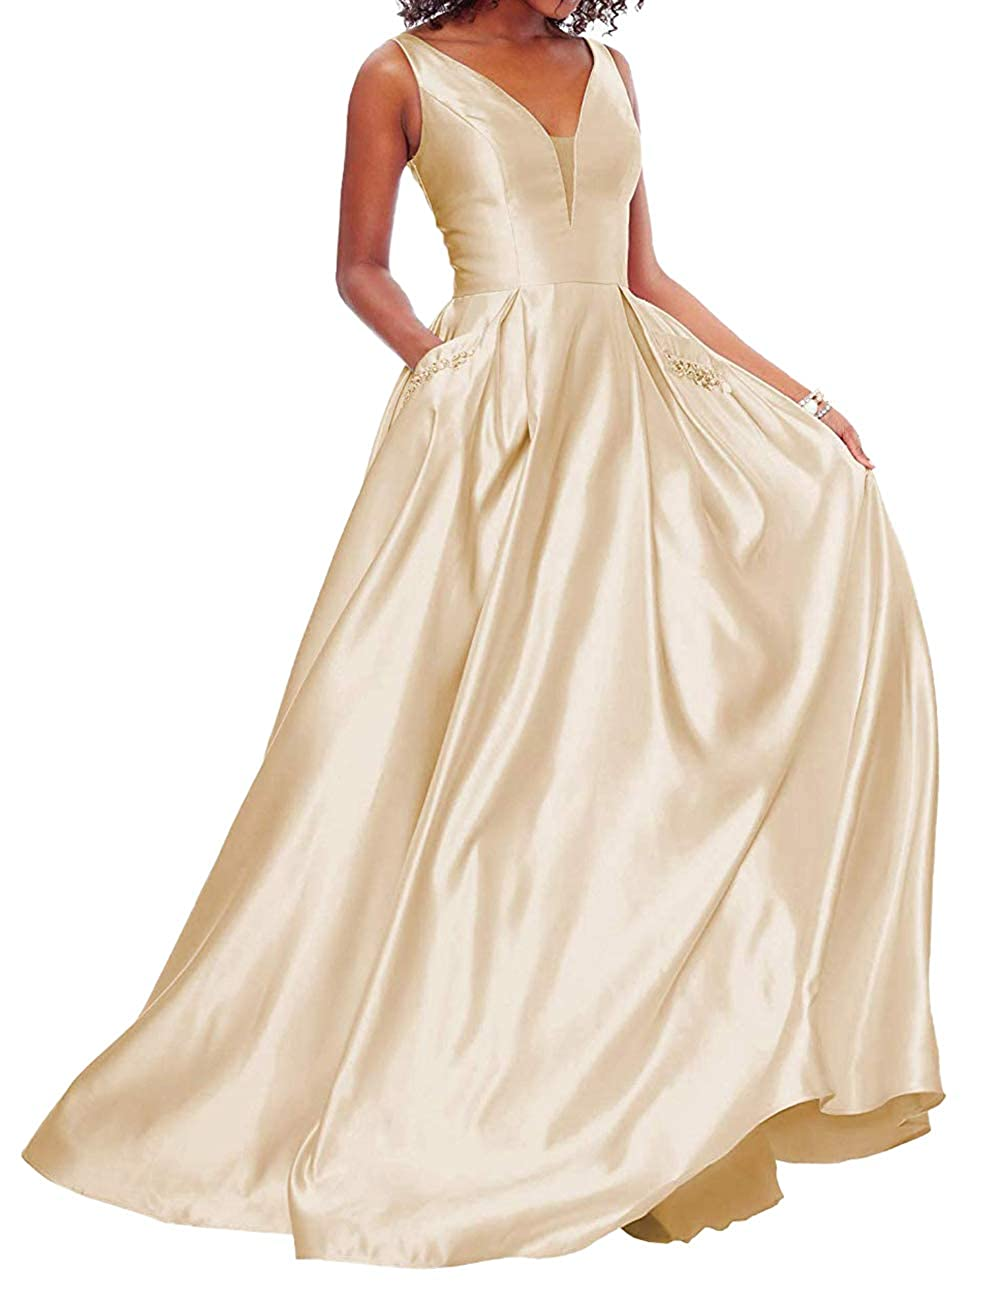 Champagne JAEDEN Prom Dresses Long Evening Gowns Formal V Neck Prom Dress Sleeveless Evening Dresses Party Gown with Pocket